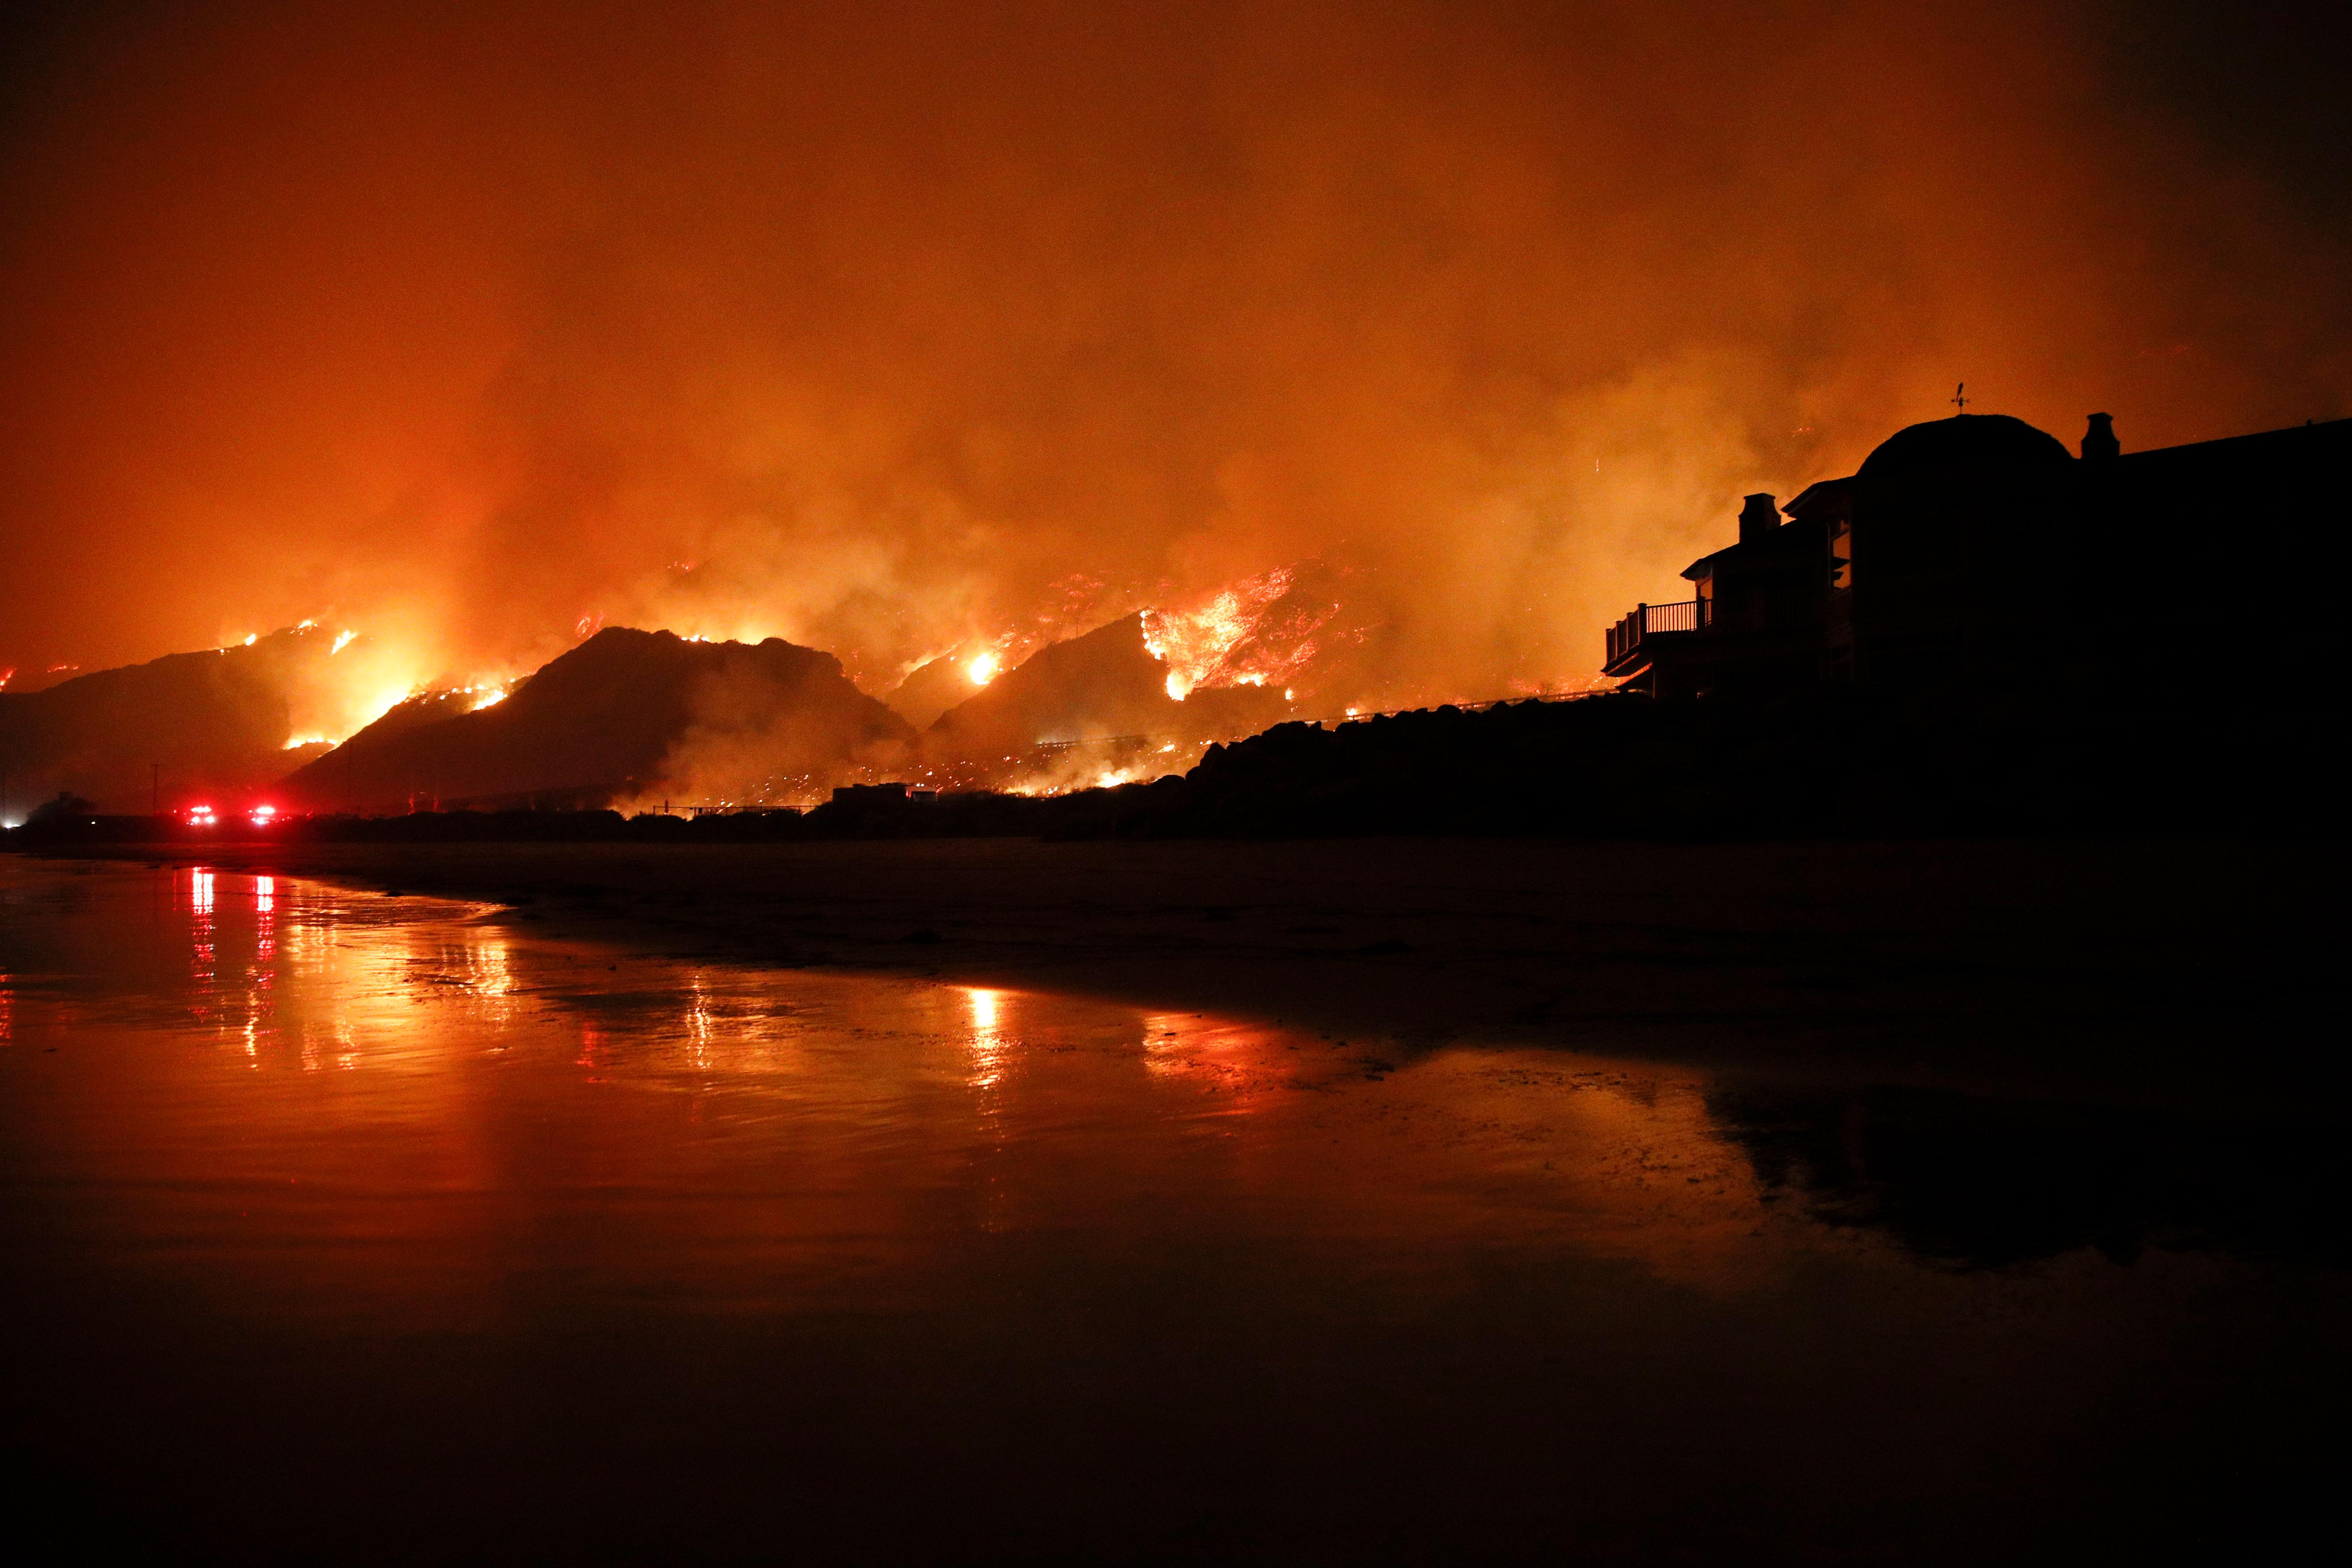 A wildfire burns along the 101 Freeway Tuesday, Dec. 5, 2017, in Ventura, Calif. Raked by ferocious Santa Ana winds, explosive wildfires northwest of Los Angeles and in the city's foothills burned a psychiatric hospital and scores of homes and other structures Tuesday and forced the evacuation of tens of thousands of people. (AP Photo/Jae C. Hong)